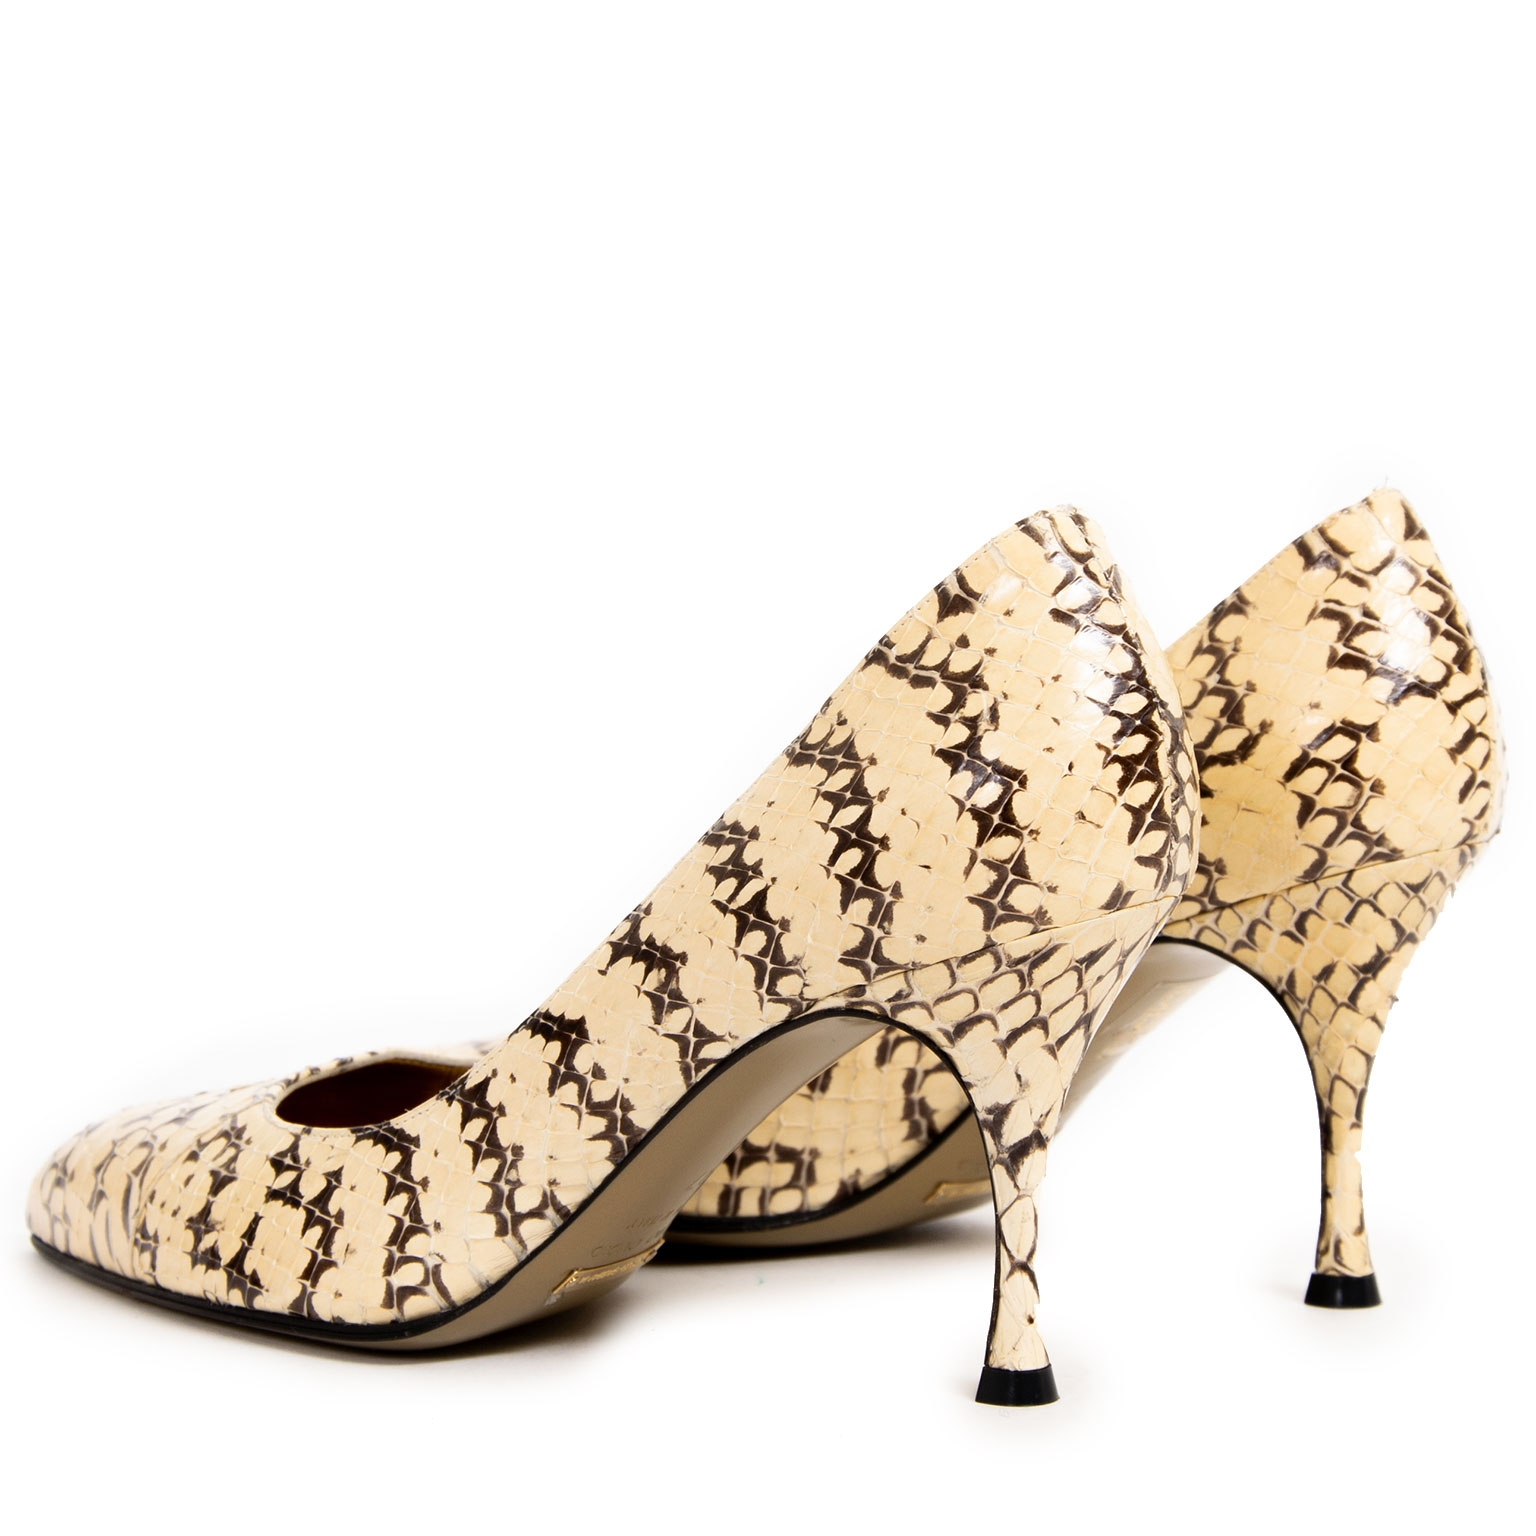 76d71bedbbba ... Dolce & Gabbana Beige Python Pumps now for sale at labellov vintage  fashion webshop belgium